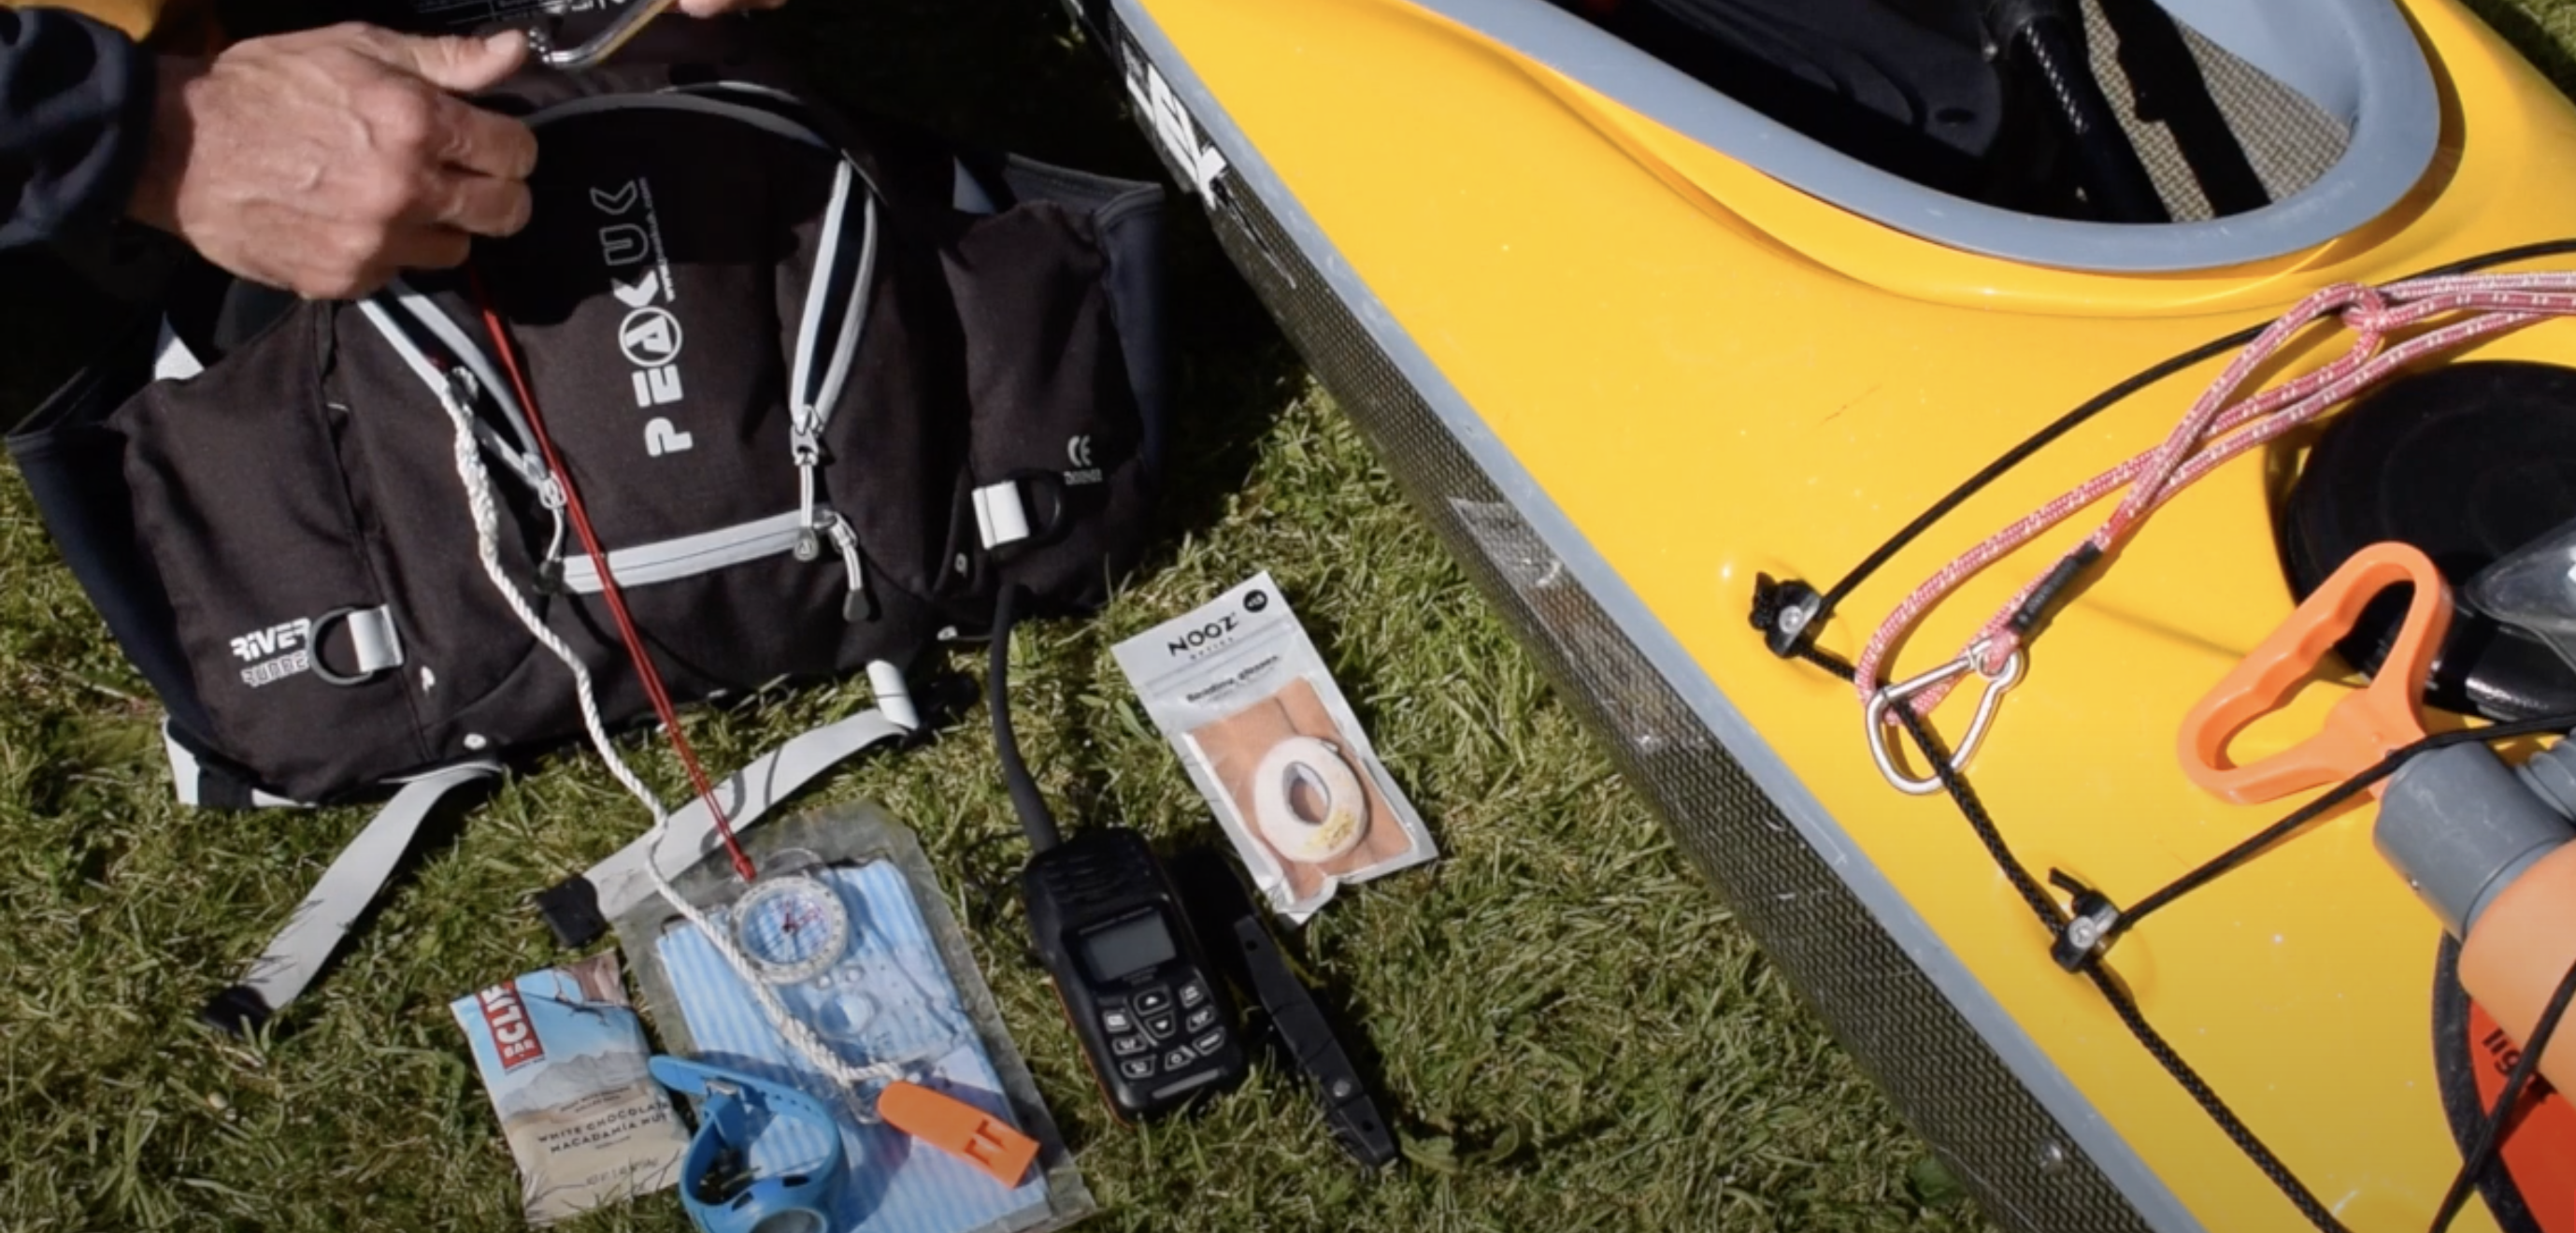 Kayak Safety Kit - PFD